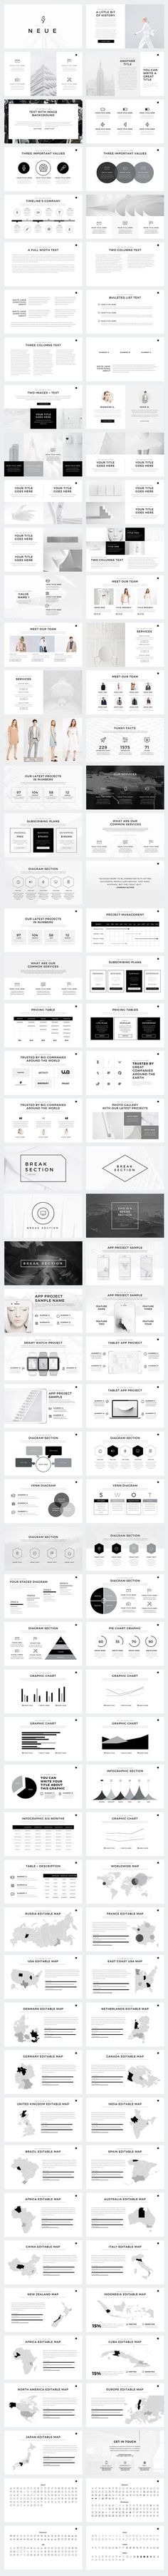 Present your works in a professional and clean way with Neue Minimal PowerPoint Template. This is a simple, contemporary but powerful design that includes creative photo layouts, infographics, tables, vector icons, maps, diagrams and tons of great features to show your work and your company profile on another level.: